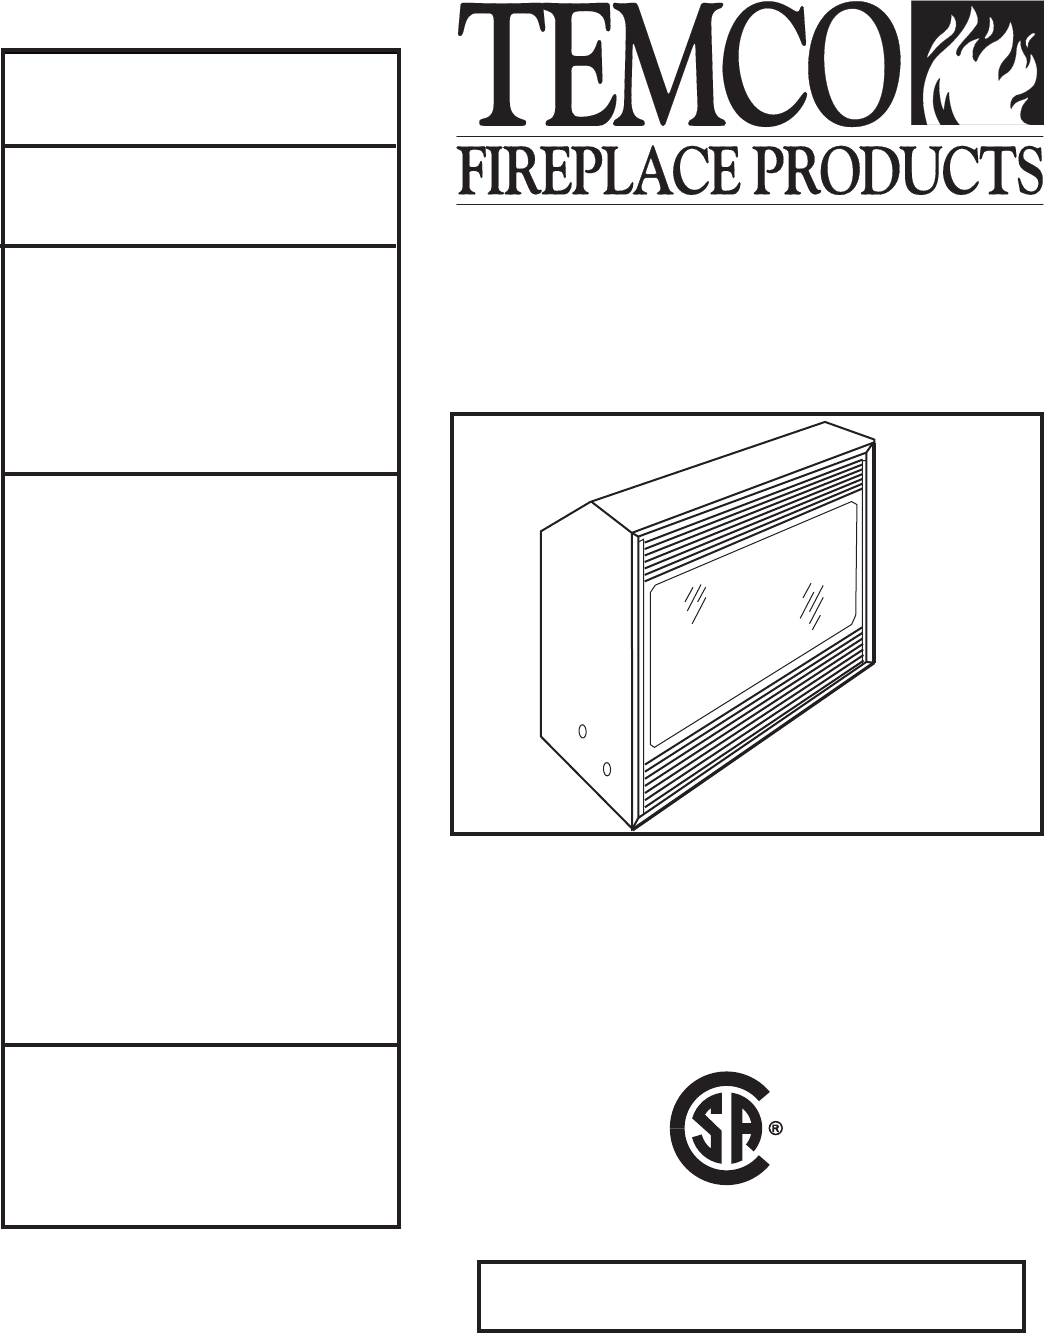 temco tool indoor fireplace dv1200n p user guide manualsonline